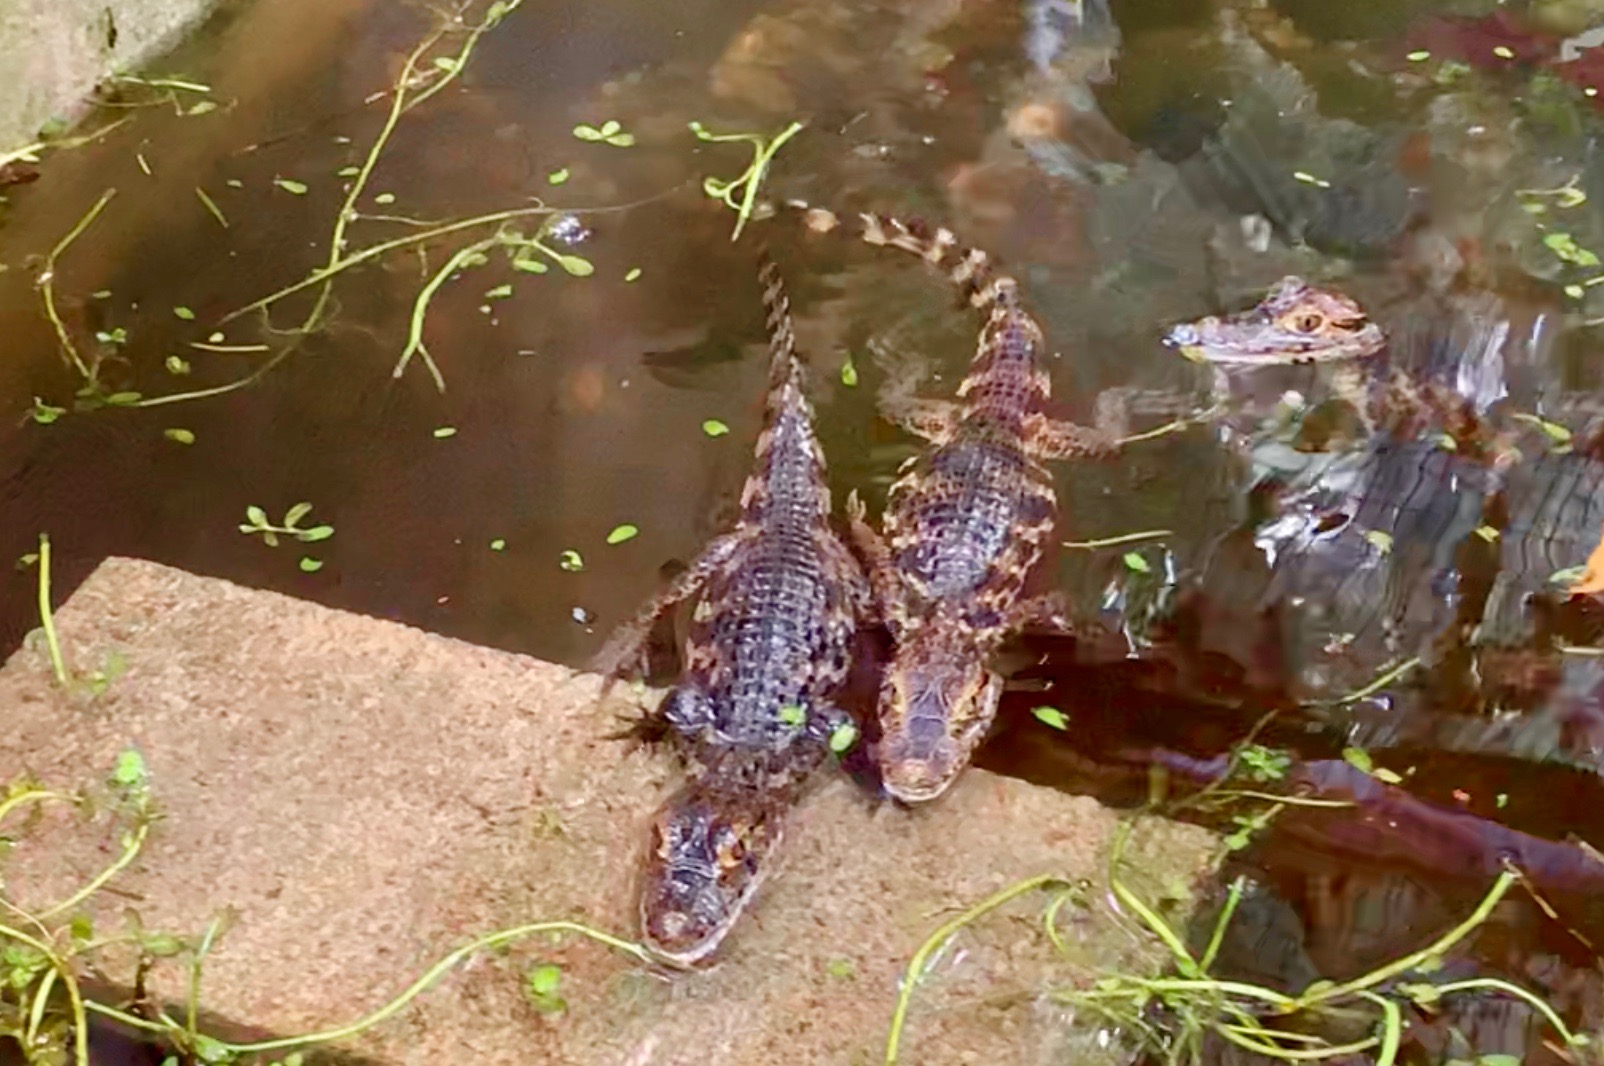 Three caimans in Costa Rica.